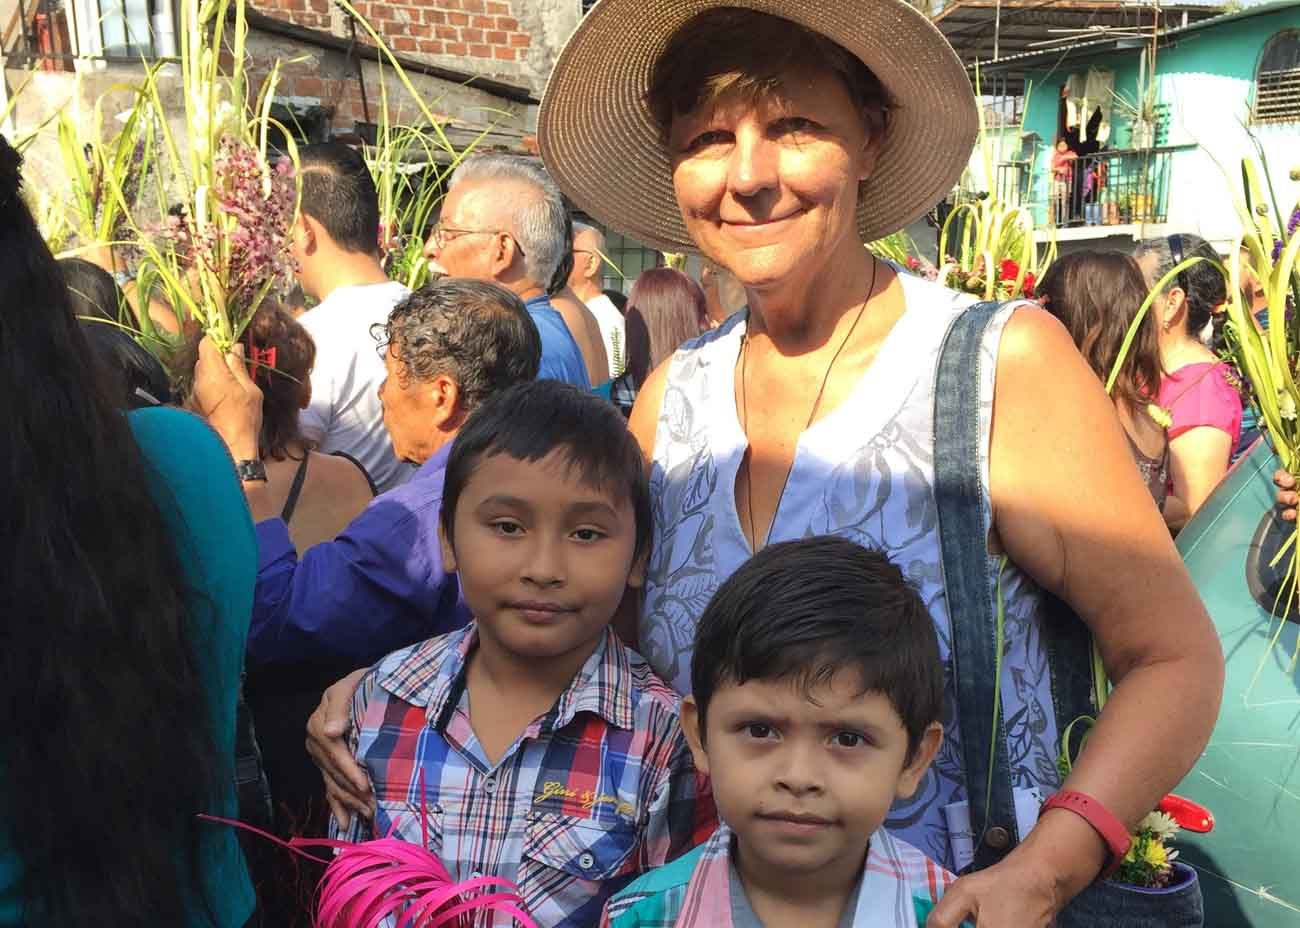 Margie Legowski, a member of Holy Trinity Catholic Church in Washington's, poses for a Palm Sunday photo April 9 with children from Holy Trinity's sister parish, Maria Madre de los Pobres Church in San Salvador, El Salvador. The sister parish is in one of the most dangerous zones of San Salvador, but it also offers great spiritual lessons of hope and love during Holy Week, says Legowski. (CNS photo/courtesy Margie Legowski)